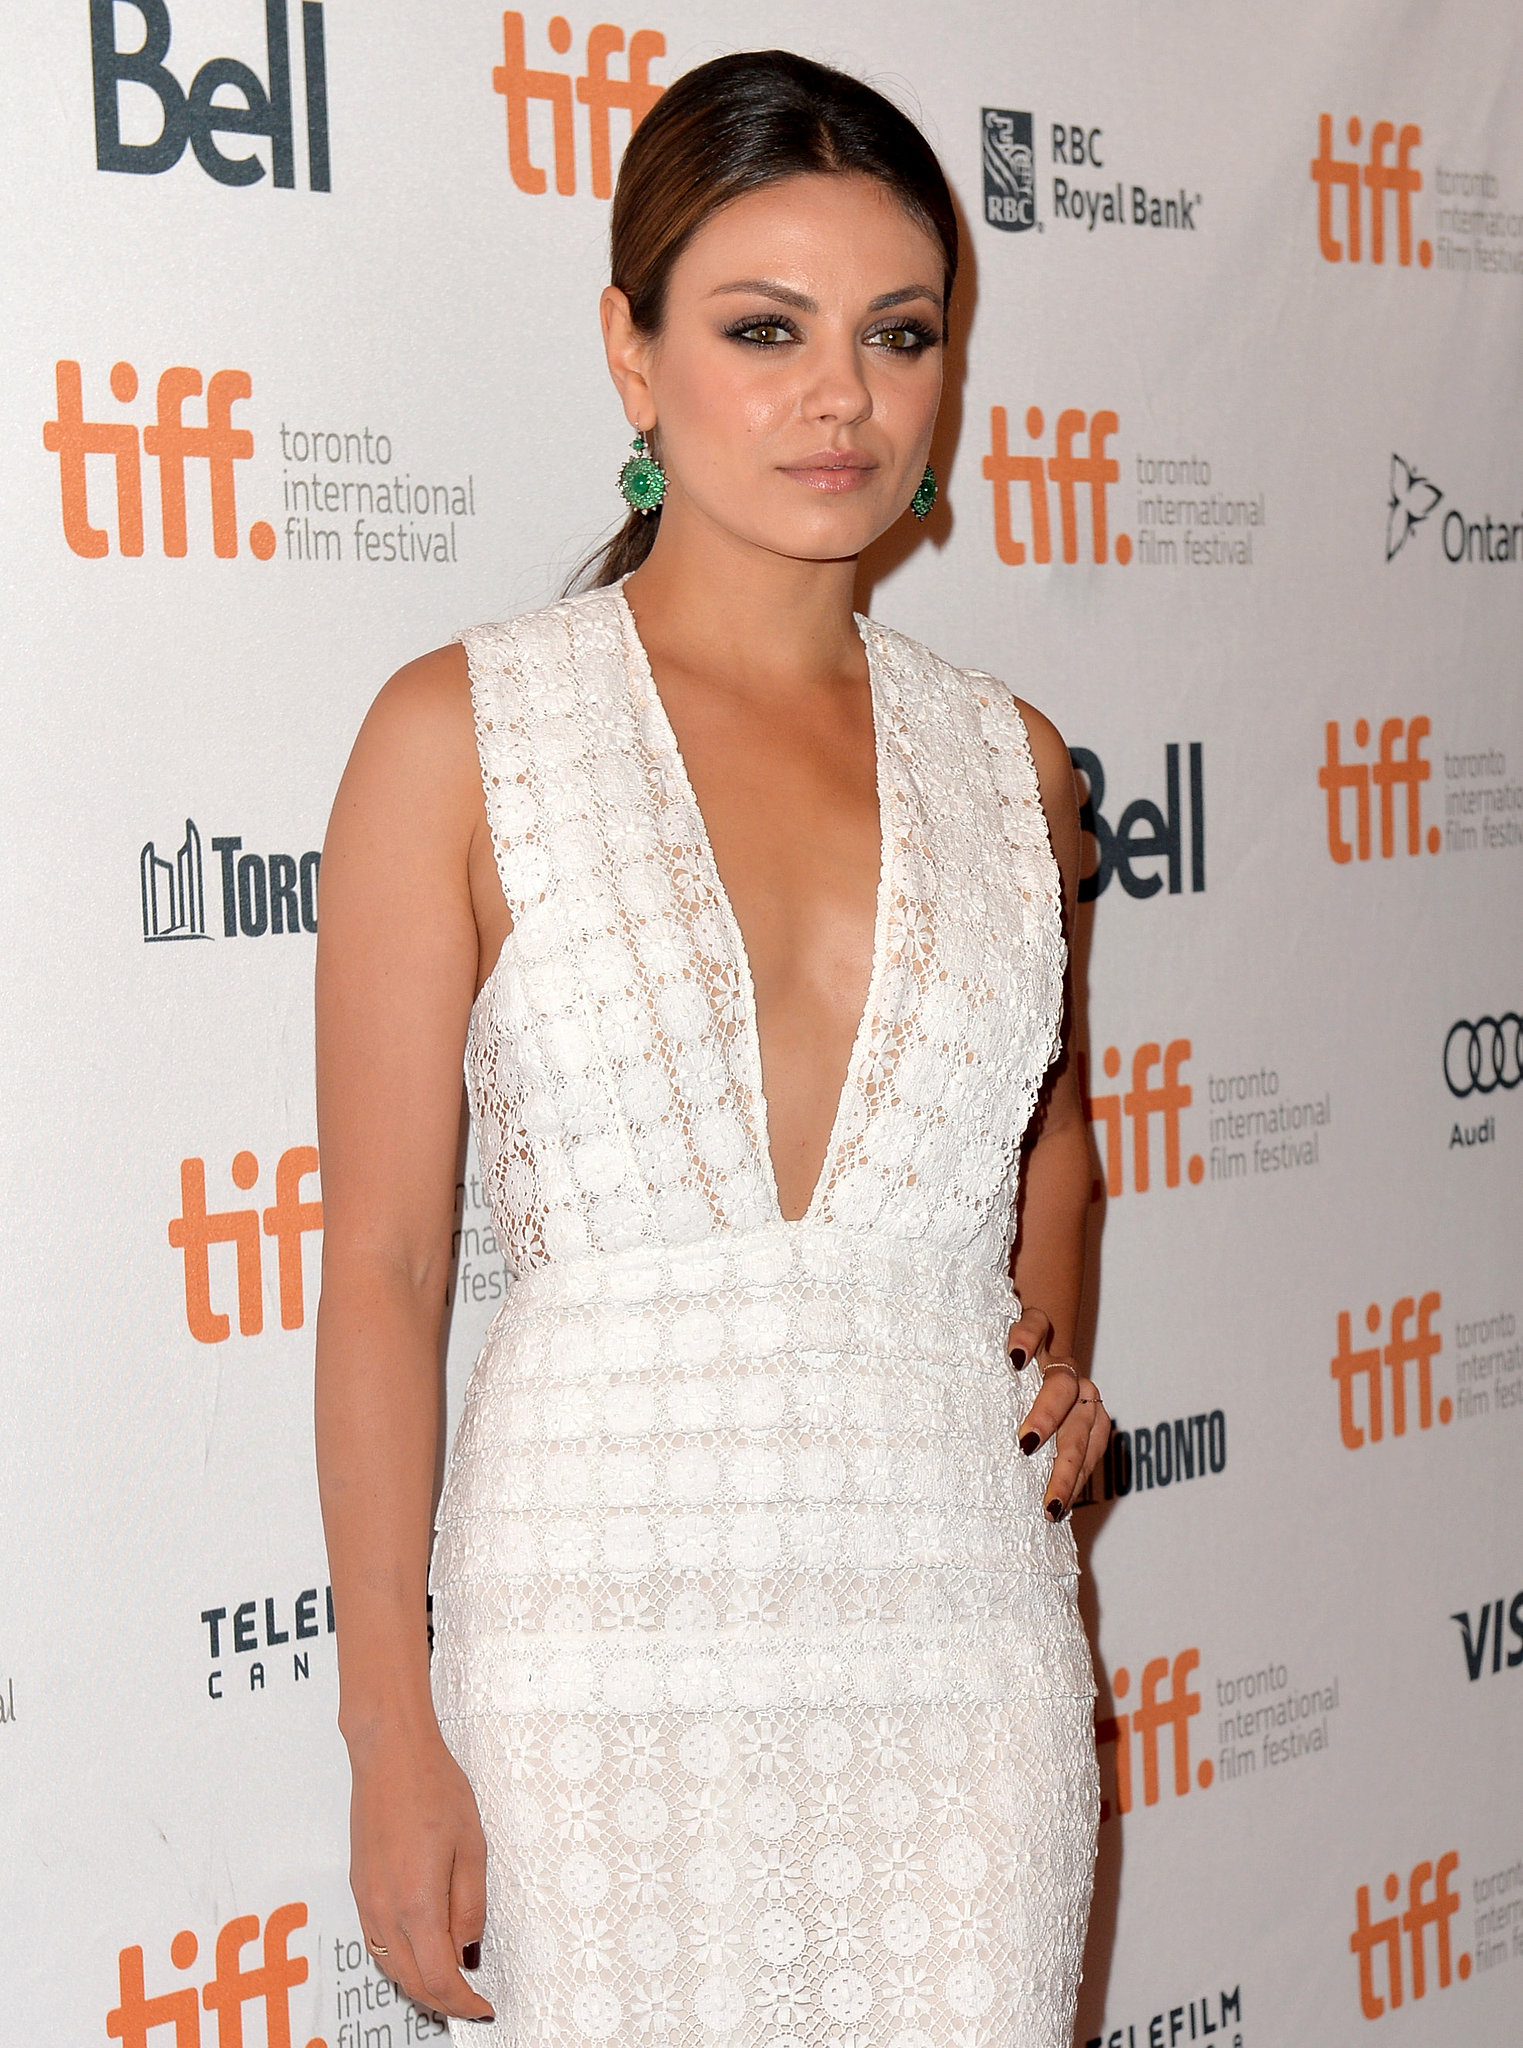 Mila Kunis made a glamorous appearance at the Third Person premiere.